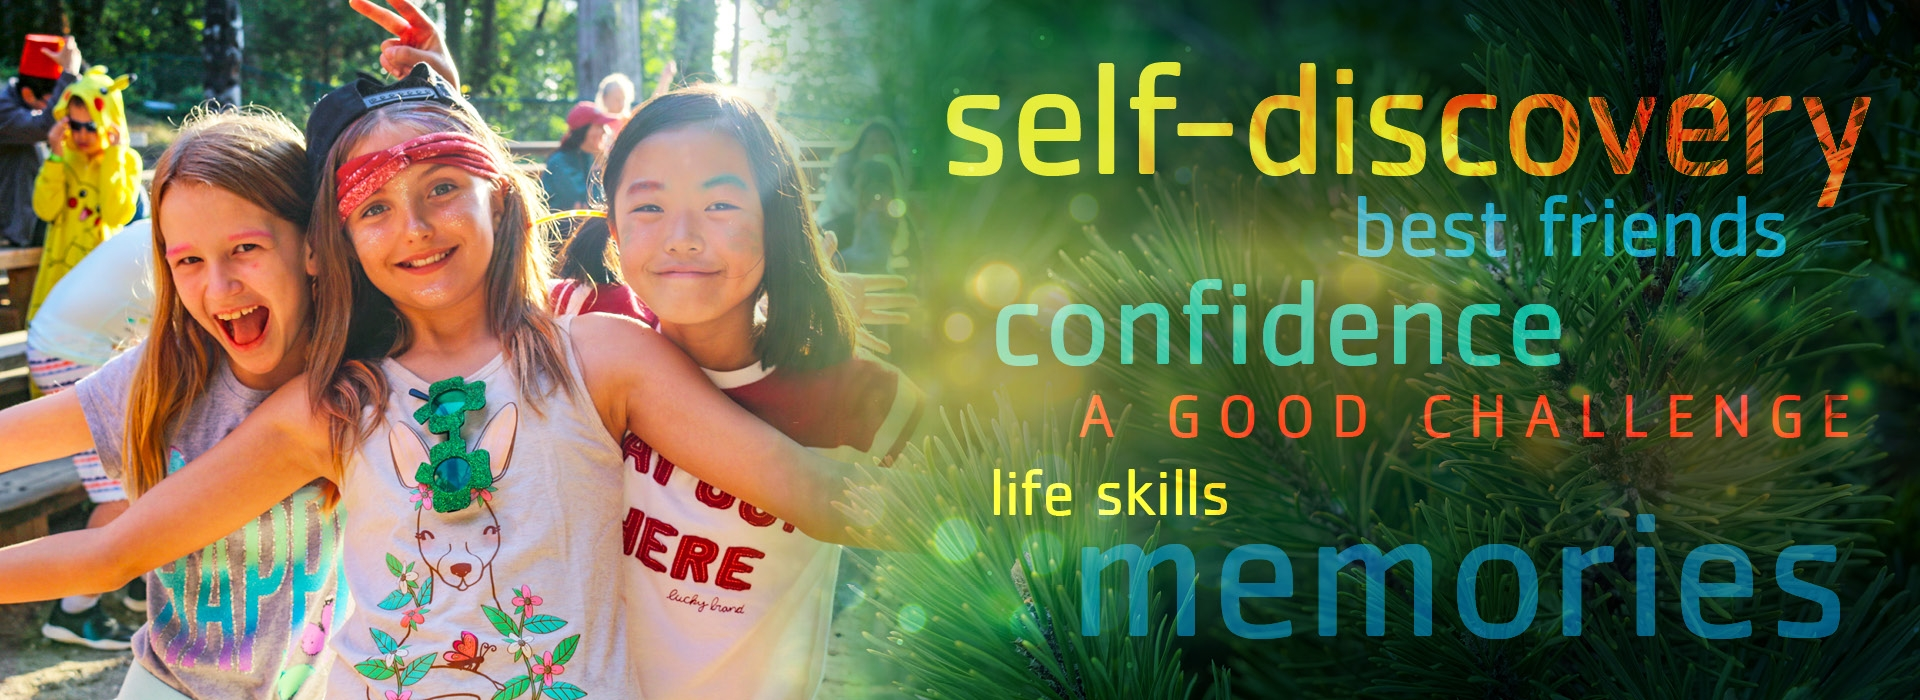 "smiling kids, with text overlay that says ""self-discovery, best friends, confidence, a good challenge, life skills, memories"""